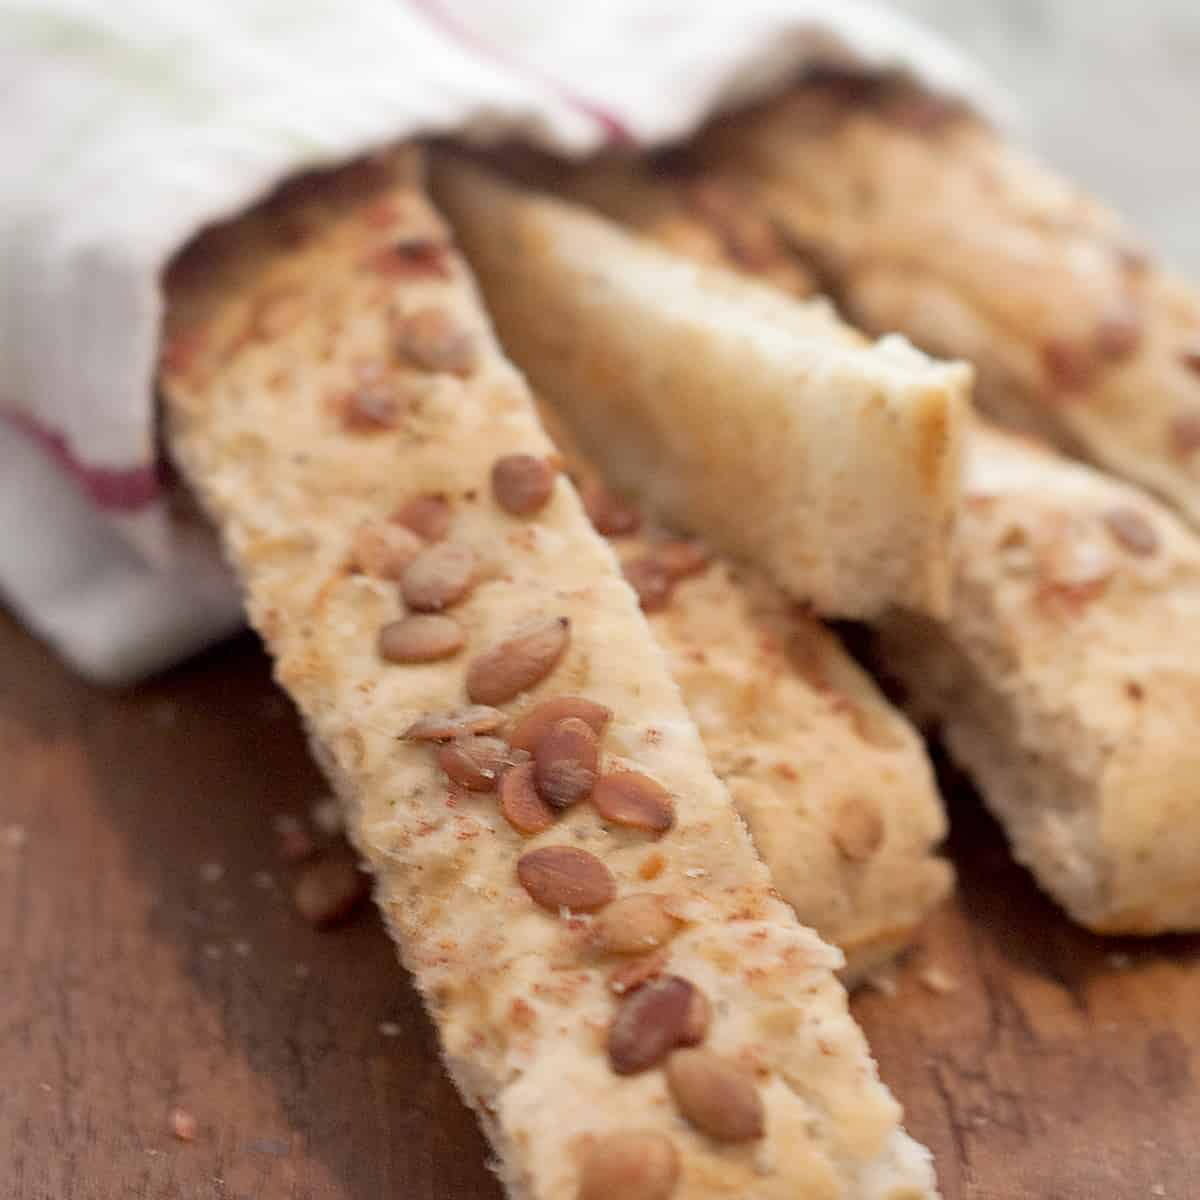 Pumpkin Seed Breadsticks - delicious savory breadsticks with Italian seasoning and topped with roasted, salted pumpkin seeds. From @NevrEnoughThyme https://www.lanascooking.com/pumpkin-seed-breadsticks/